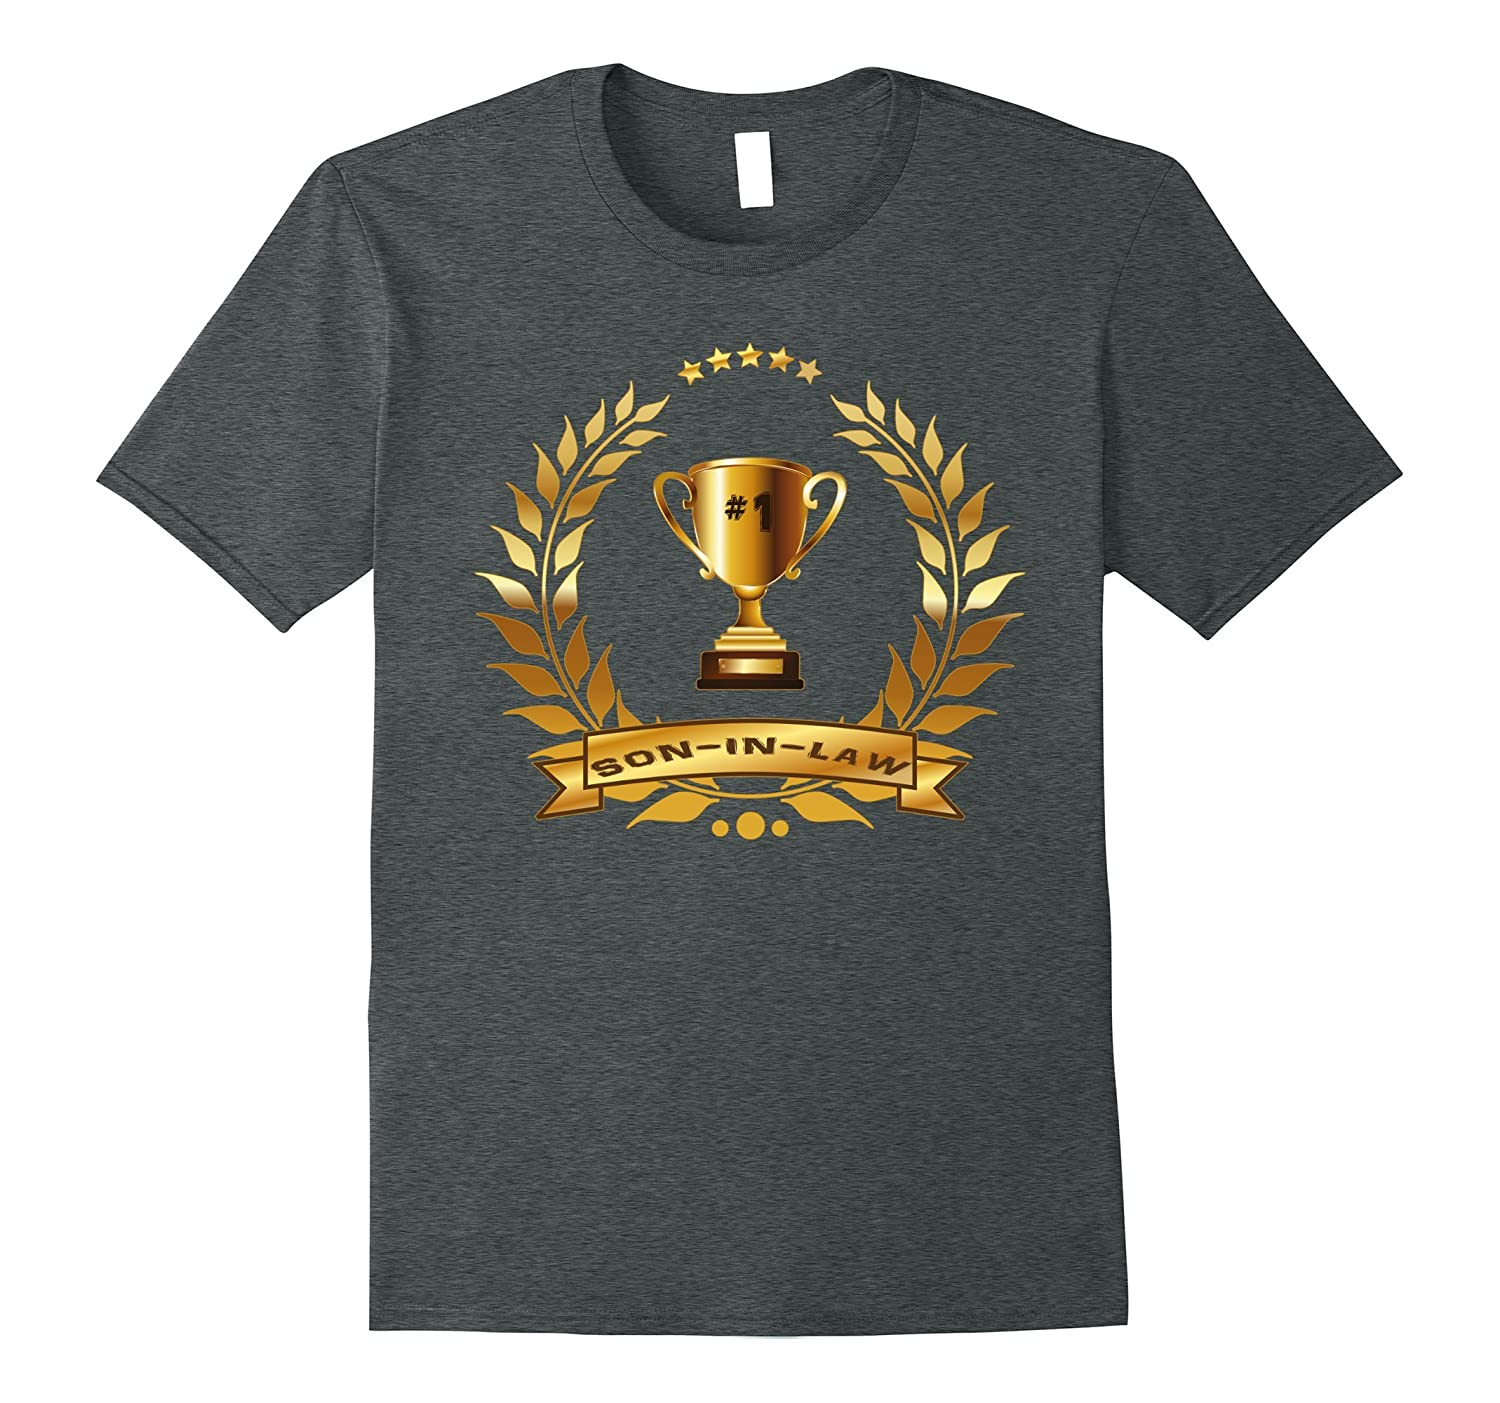 #1 Son-In-Law T-Shirt With Trophy-Gift For Best Son-In-Law